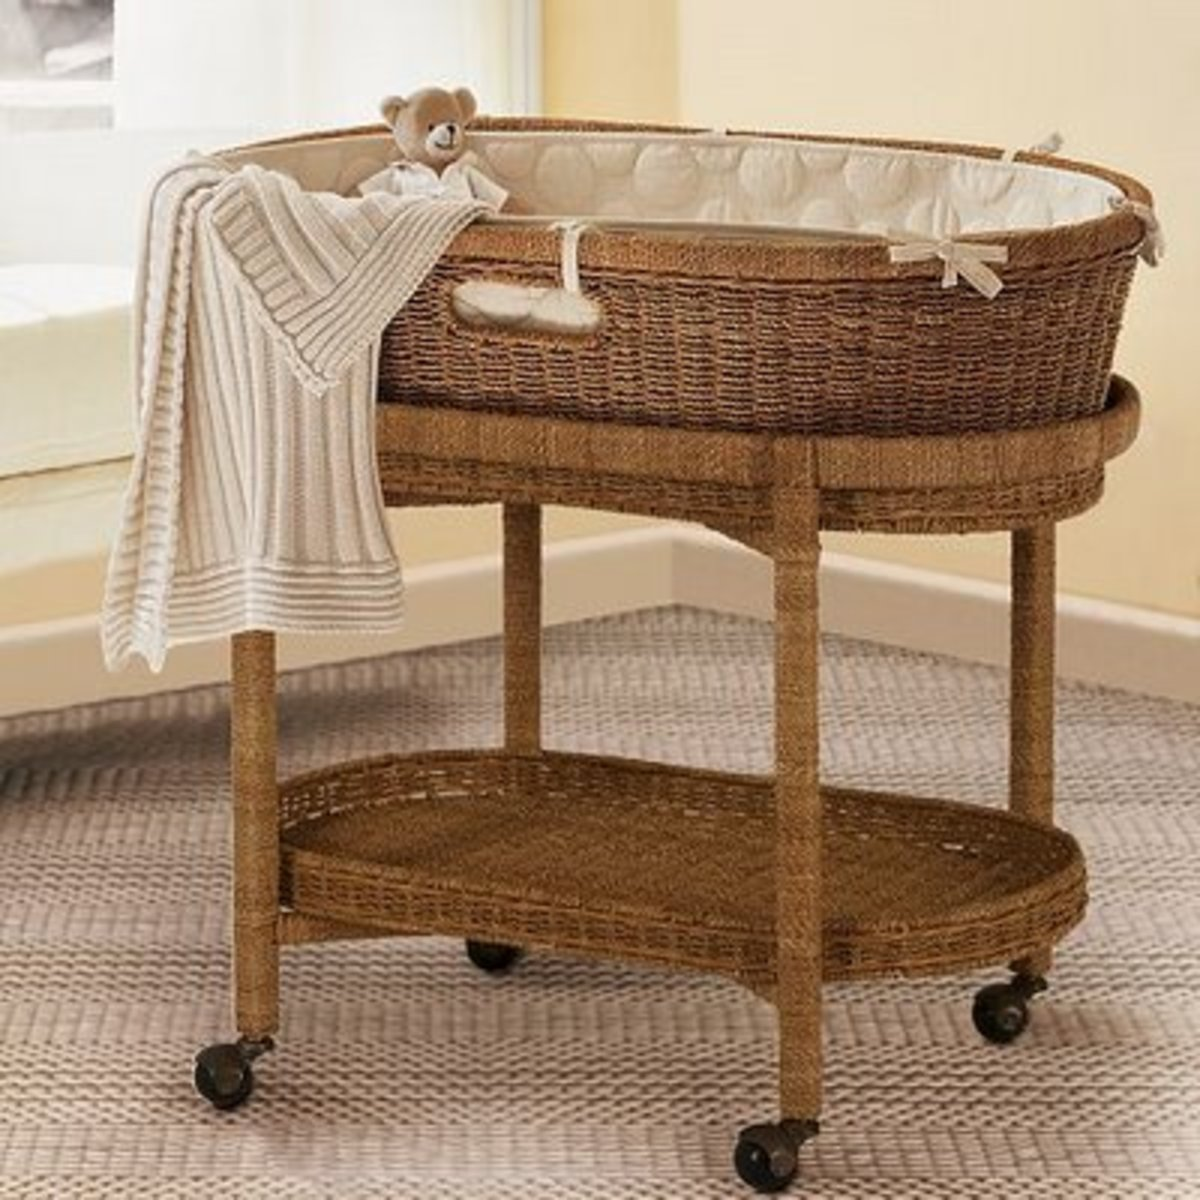 Vintage To Modern Baby Bassinets And Moses Baskets